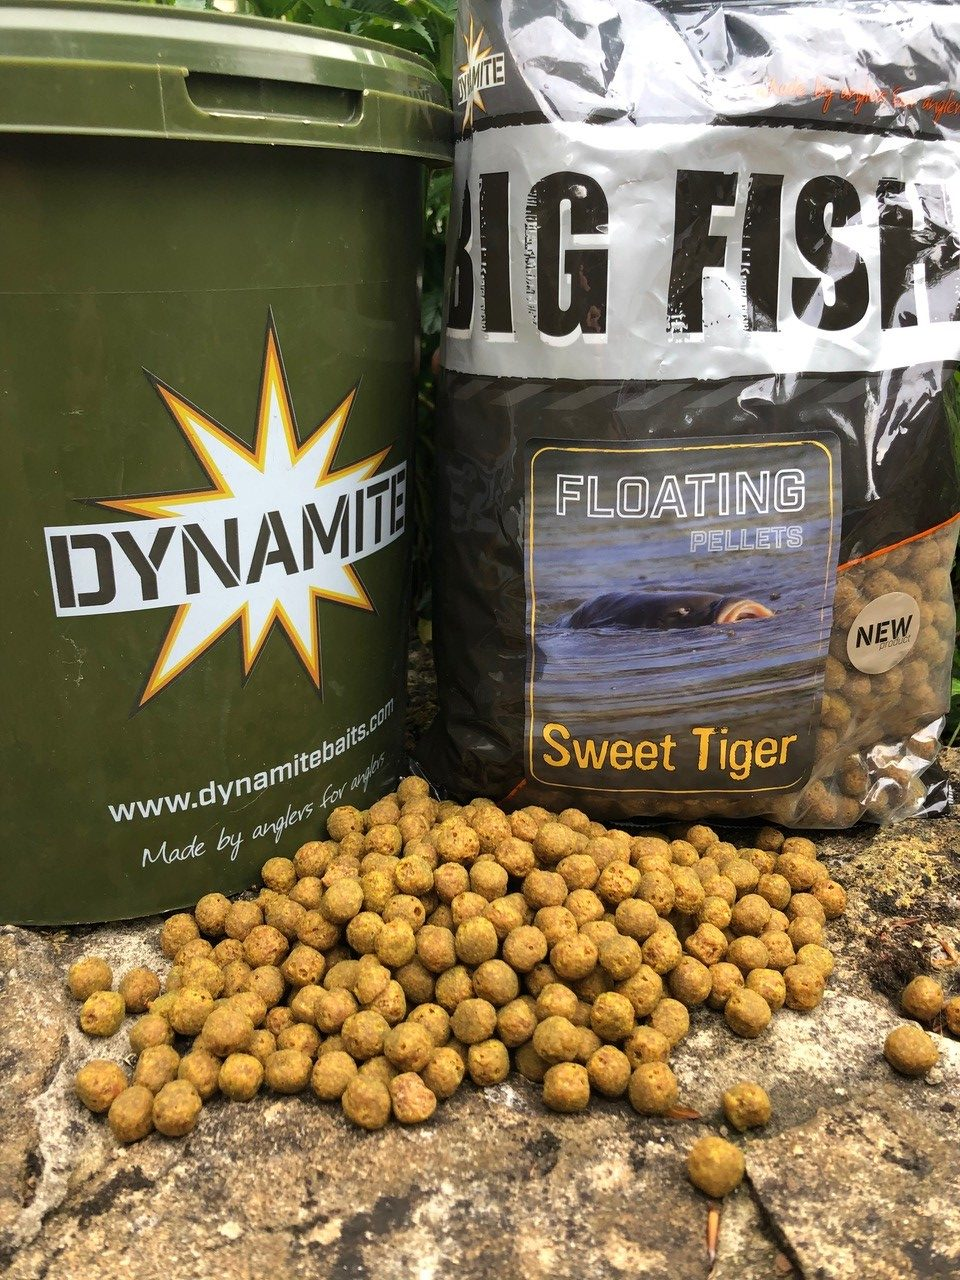 sweet tiger floating pellets for carp